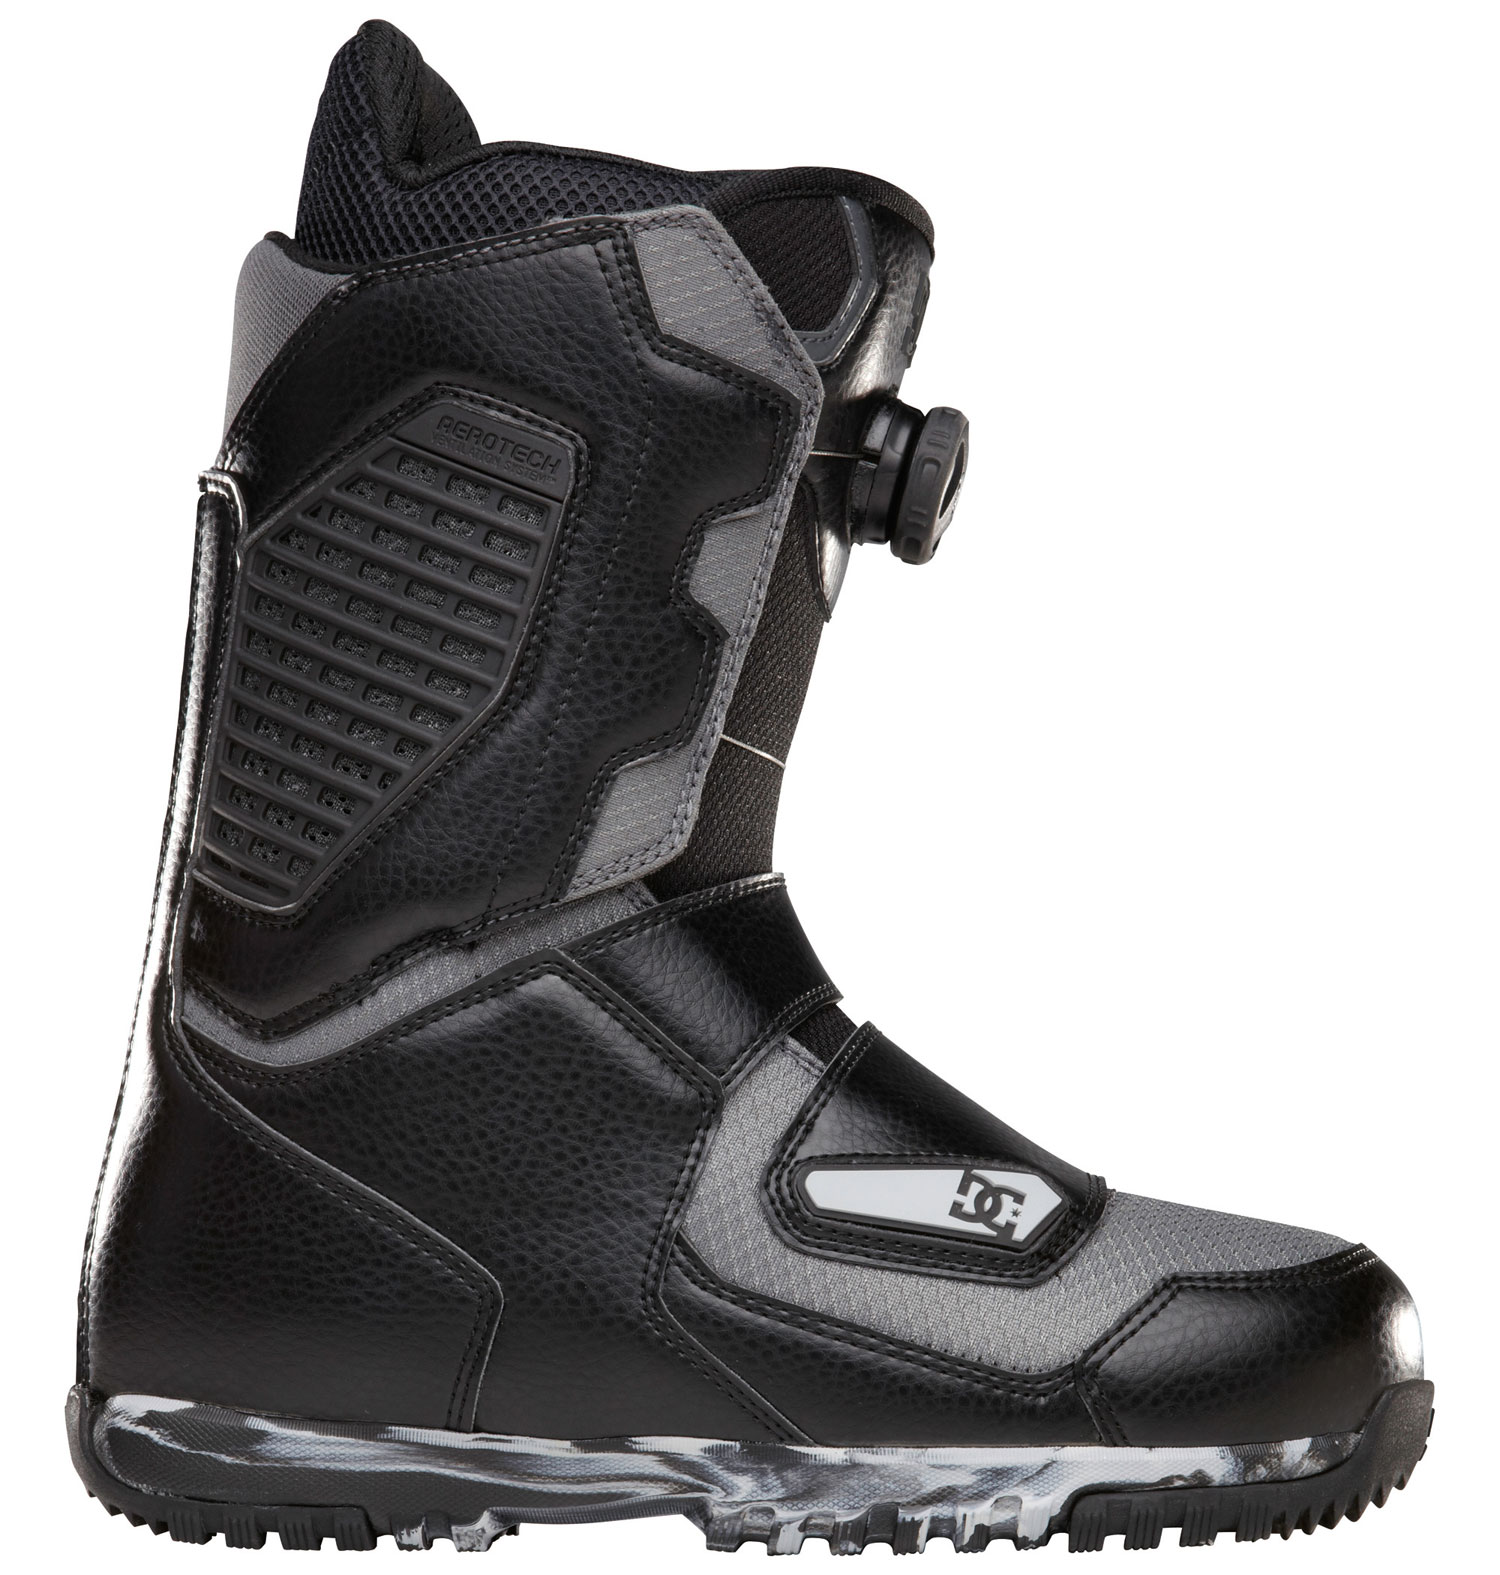 "Snowboard ""Court is in session and this boot is in charge!""- andrew geevesKey Features of the DC Judge Snowboard Boots: Flex: 8 Aerotech Ventilation System: molded vents in the shell and liner work in unison to release unwanted moisture away from the riders foot. this proprietary system will keep your feet warm and dry and prevent bacteria build up. Constrictor Hybrid System 3D Tongue Articulation Molded backstay Internal Ankle Harness UniLite: DC's proprietary outsole technology, UnILIte provides traction, durability, dampening, and cushioning all while drastically reducing weight. UnILIte soles feature distinct traction patterns for ascending, descending, and skating around with our Push Zone tread pattern. the snow-shedding traction designs also prevent snow from building up and clogging bindings. Boa Coiler Alpha Liner: multi density zones, neoprene ankle strap, aerotech system, aegis, full grain leather collar top on status & terrain models, anatomical j-bars - $195.95"